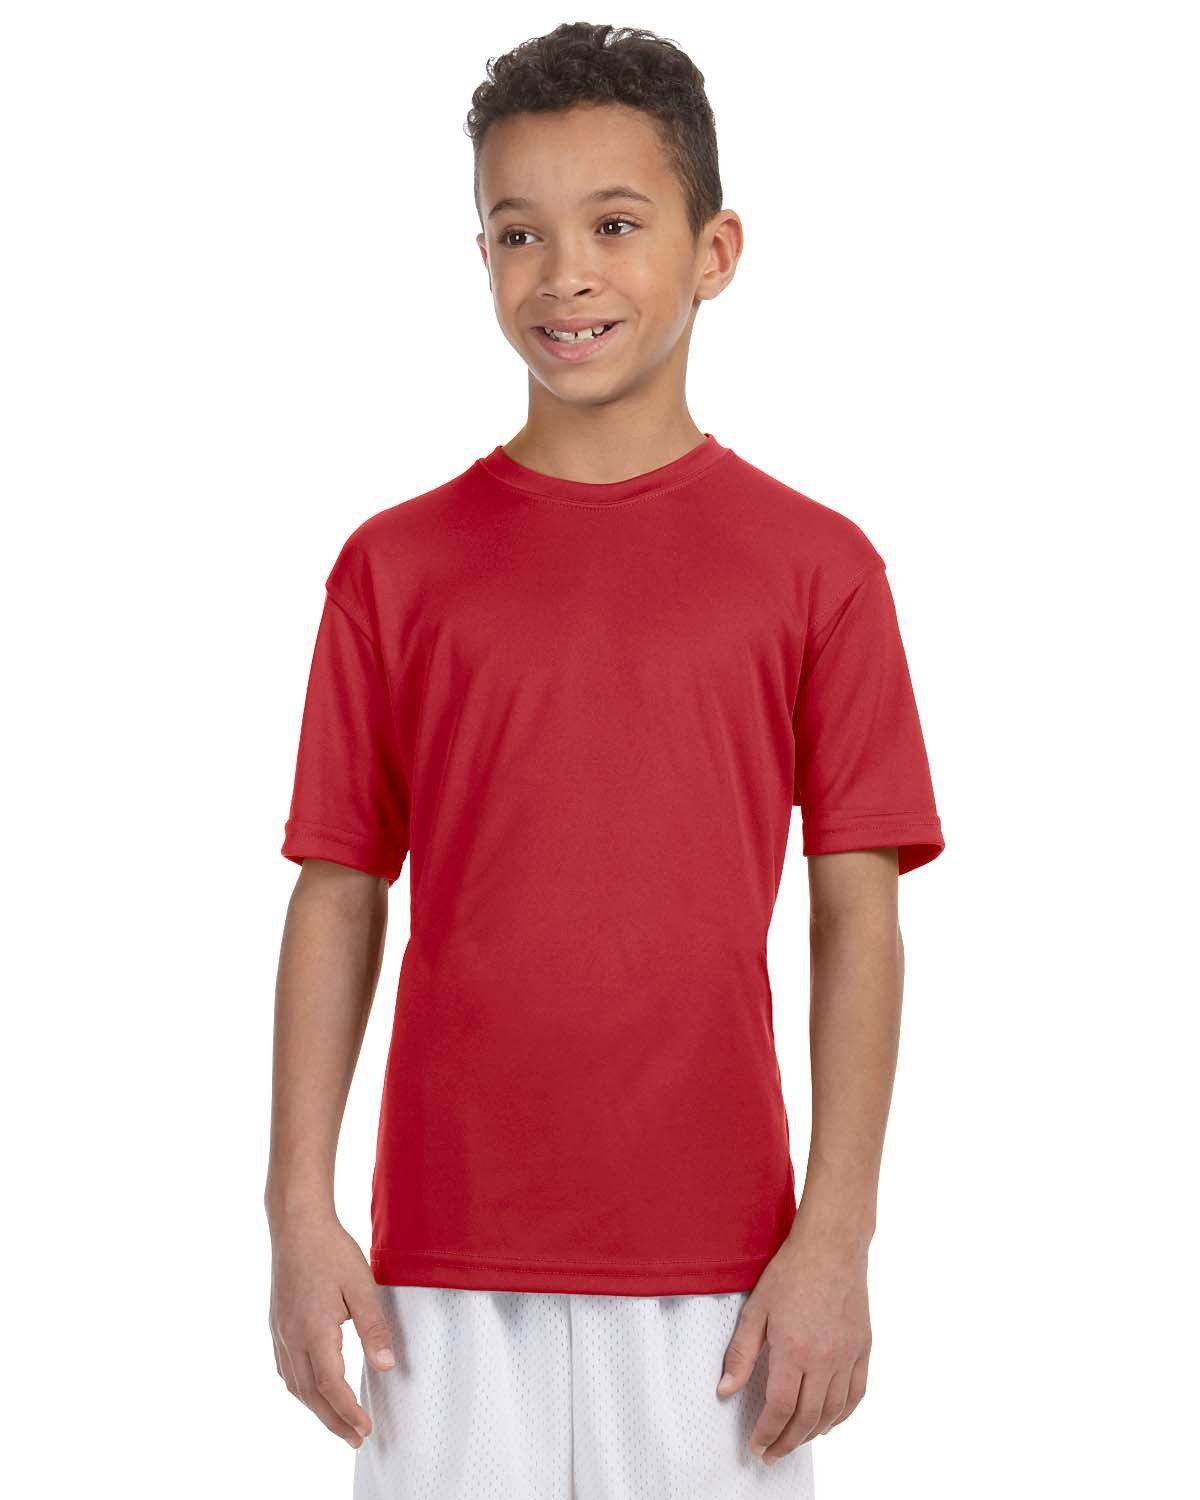 Harriton Youth 4.2 oz. Athletic Sport T-Shirt RED